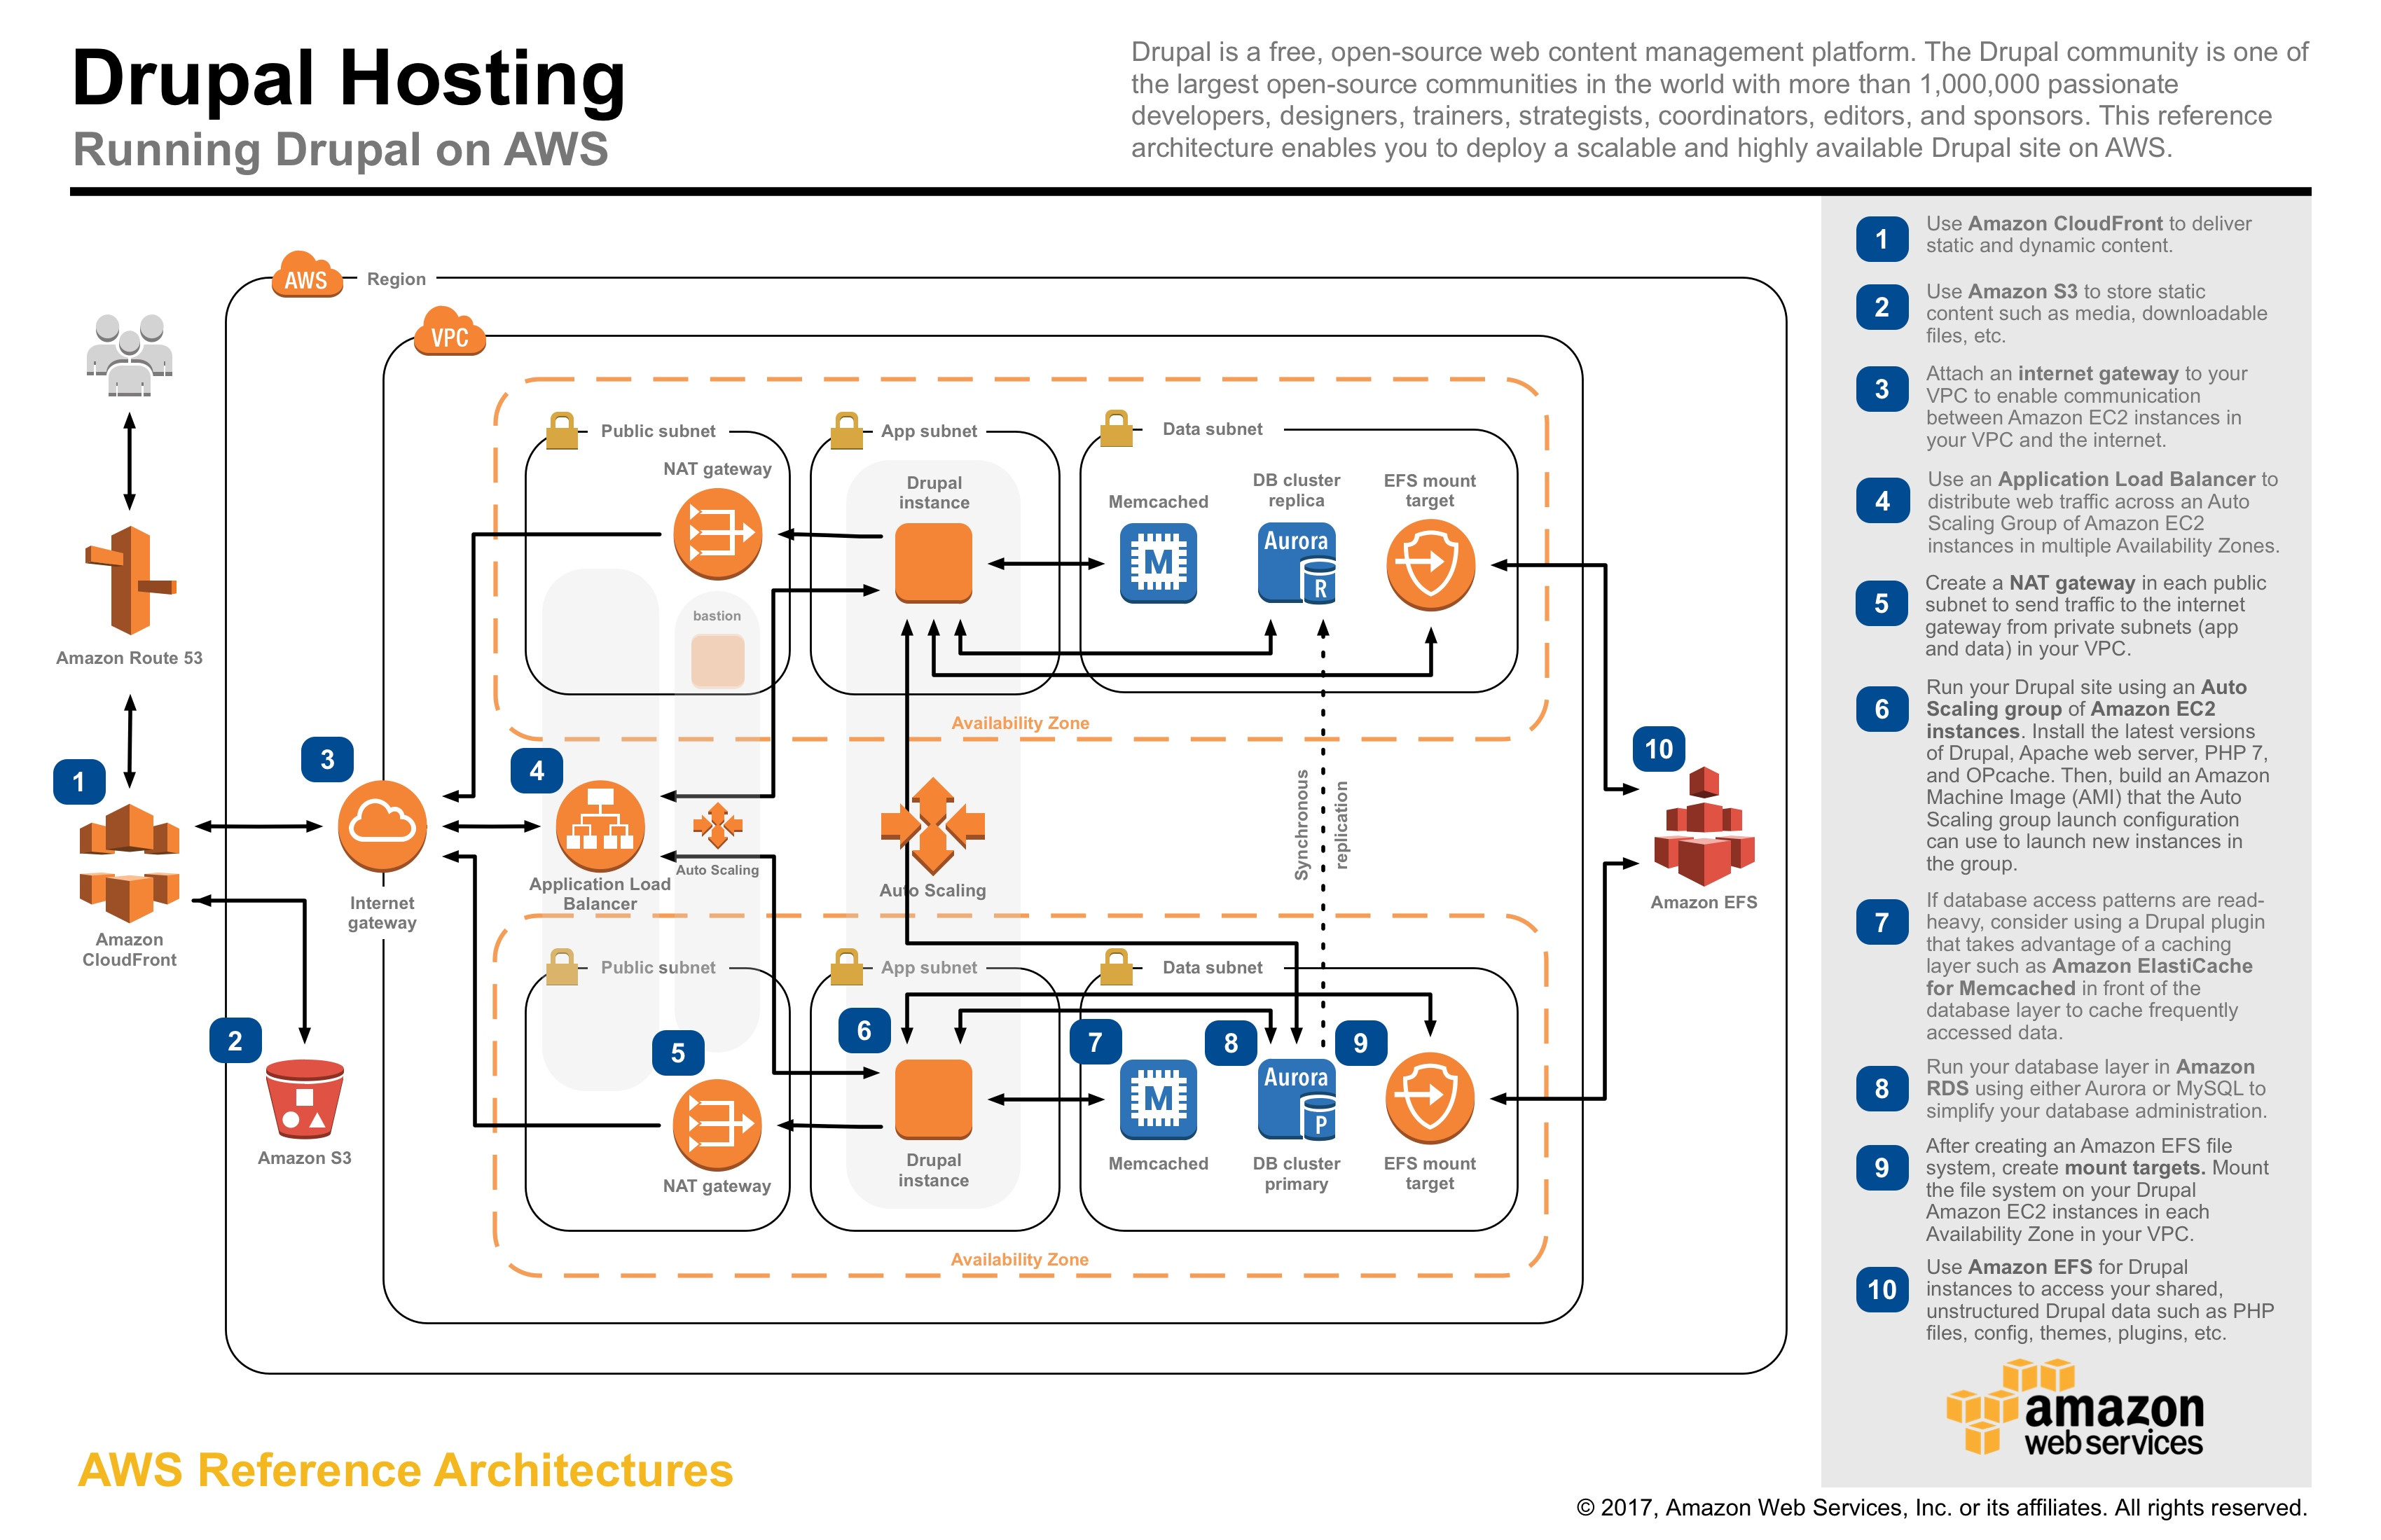 Drupal on AWS Reference Architecture